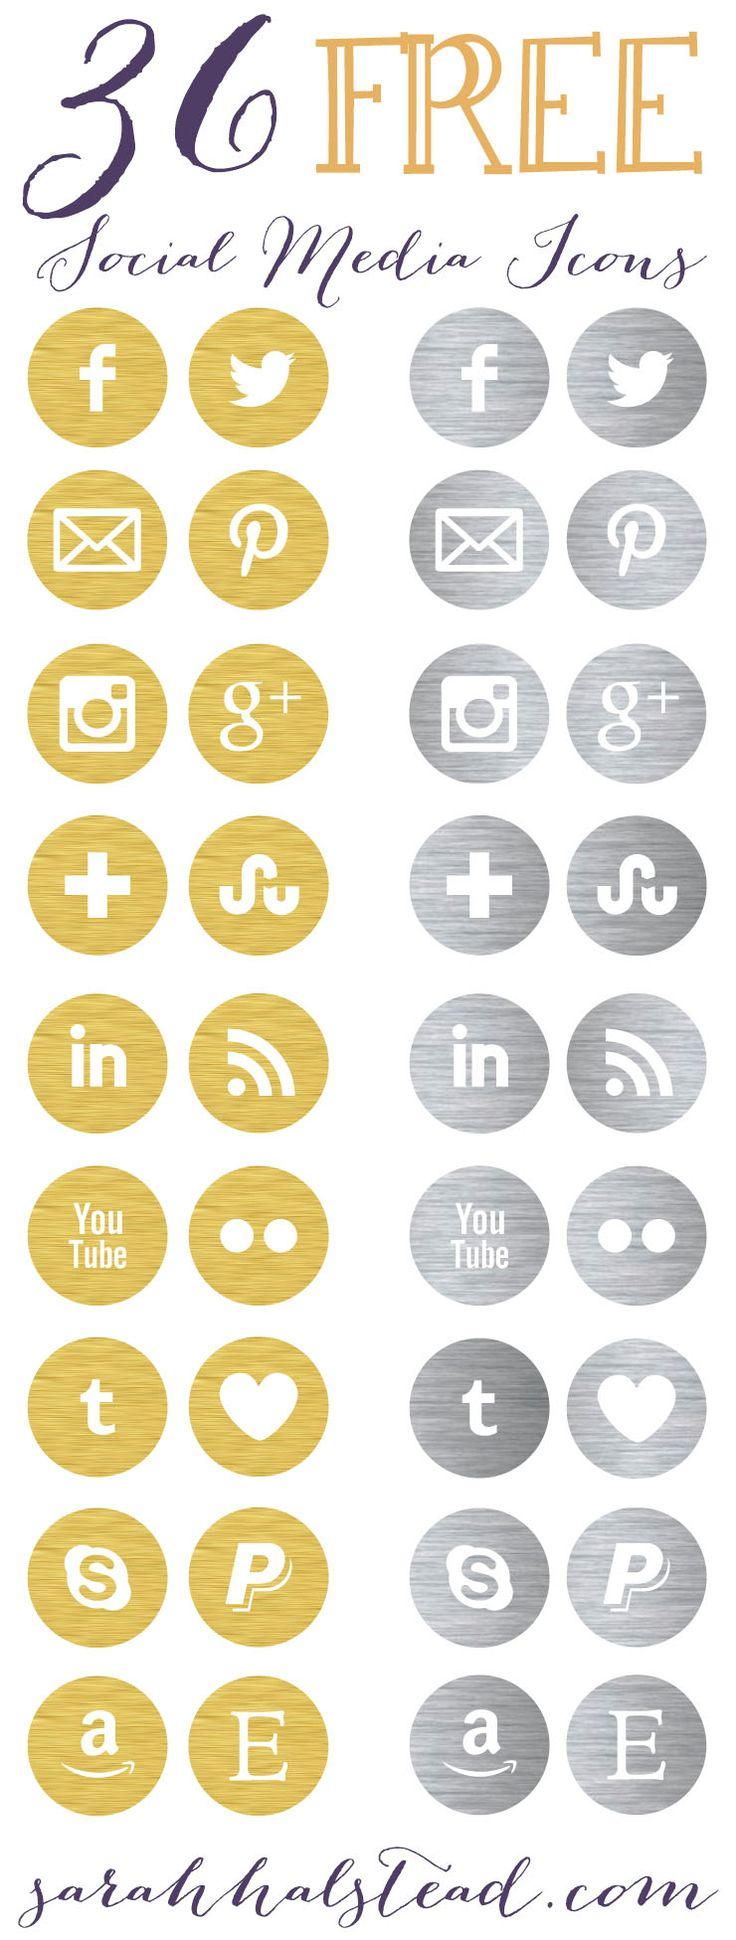 Free Social Media Icons for your blog | Gold & Silver | by Sarah Halstead                                                                                                                                                                                 More